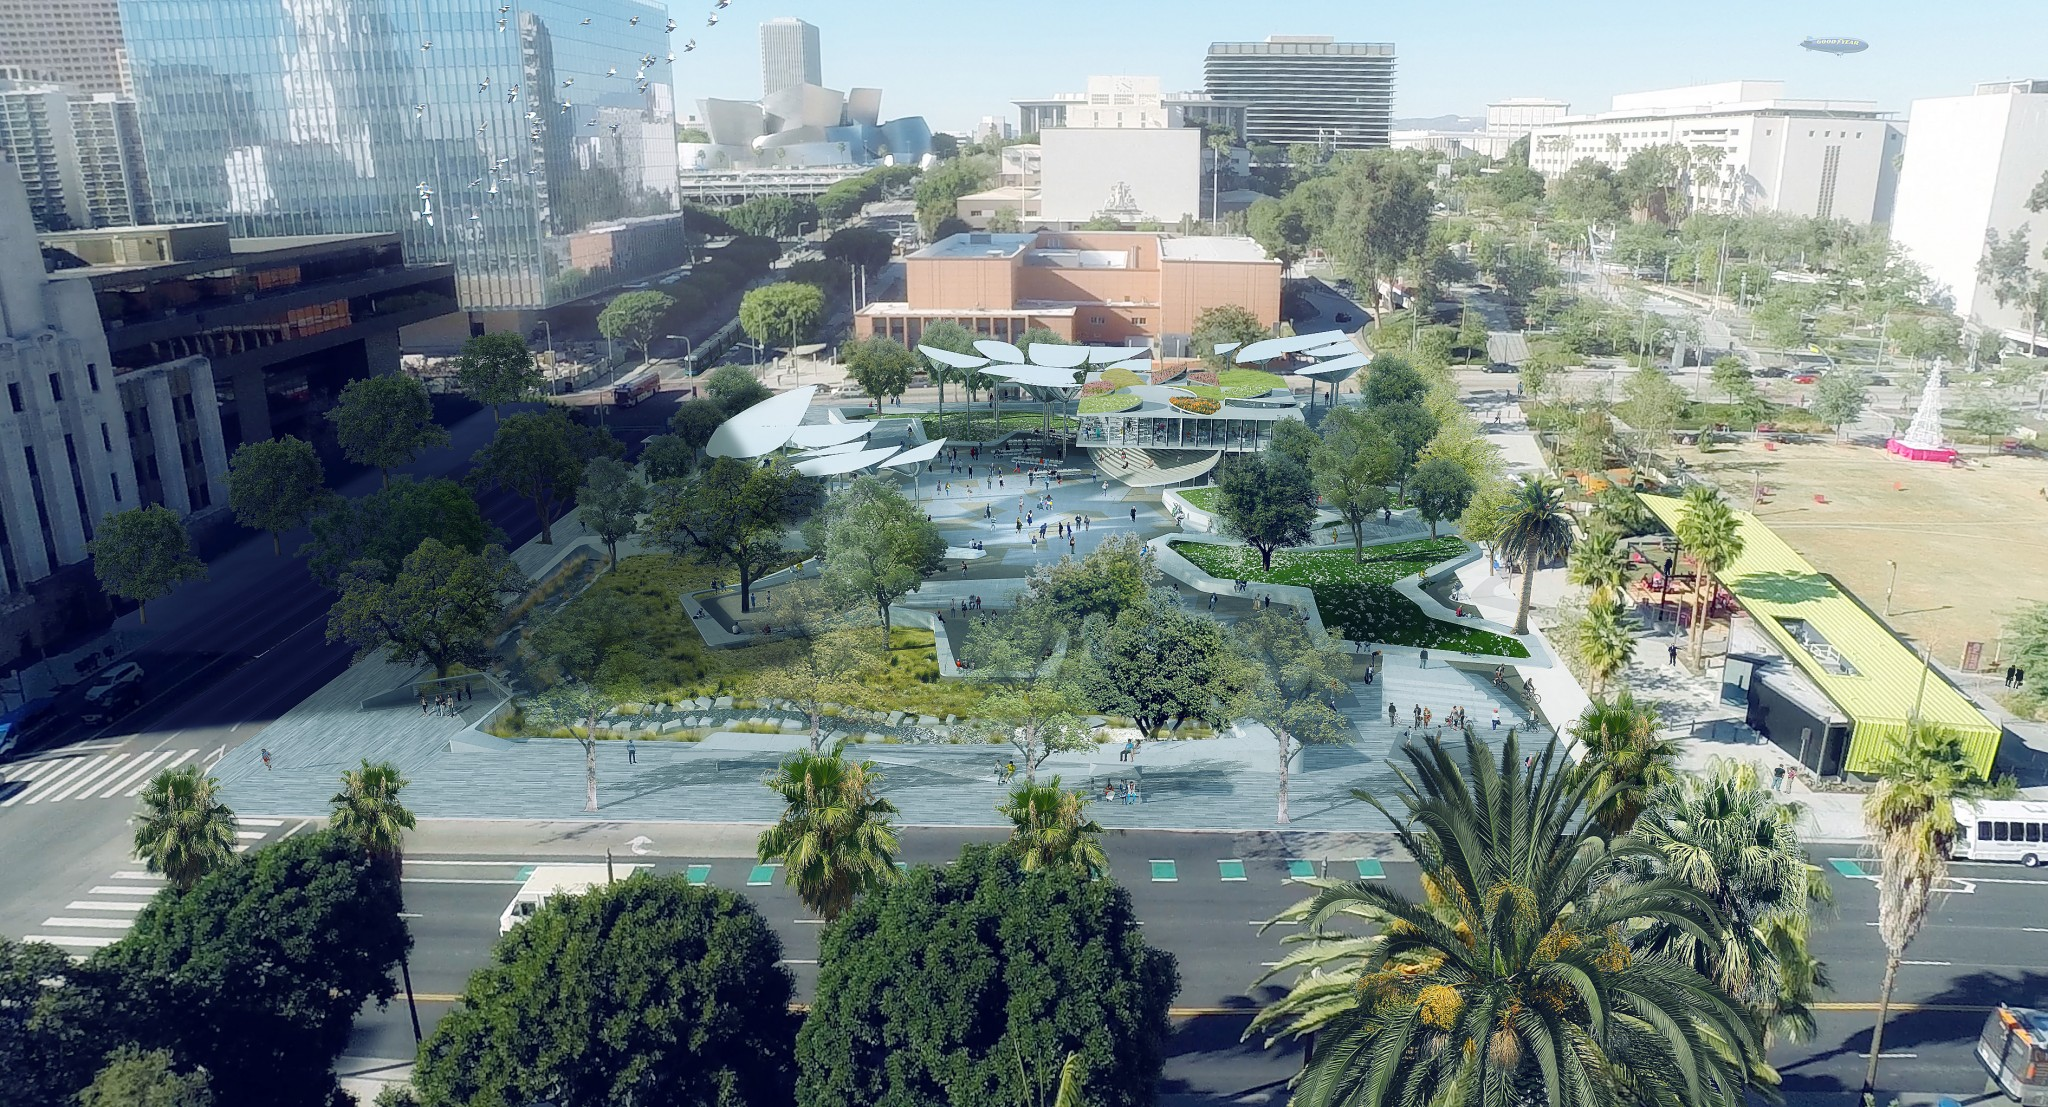 An aerial view of the proposed 2-acre FAB Park from City Hall. (Mia Lehrer & Associates)